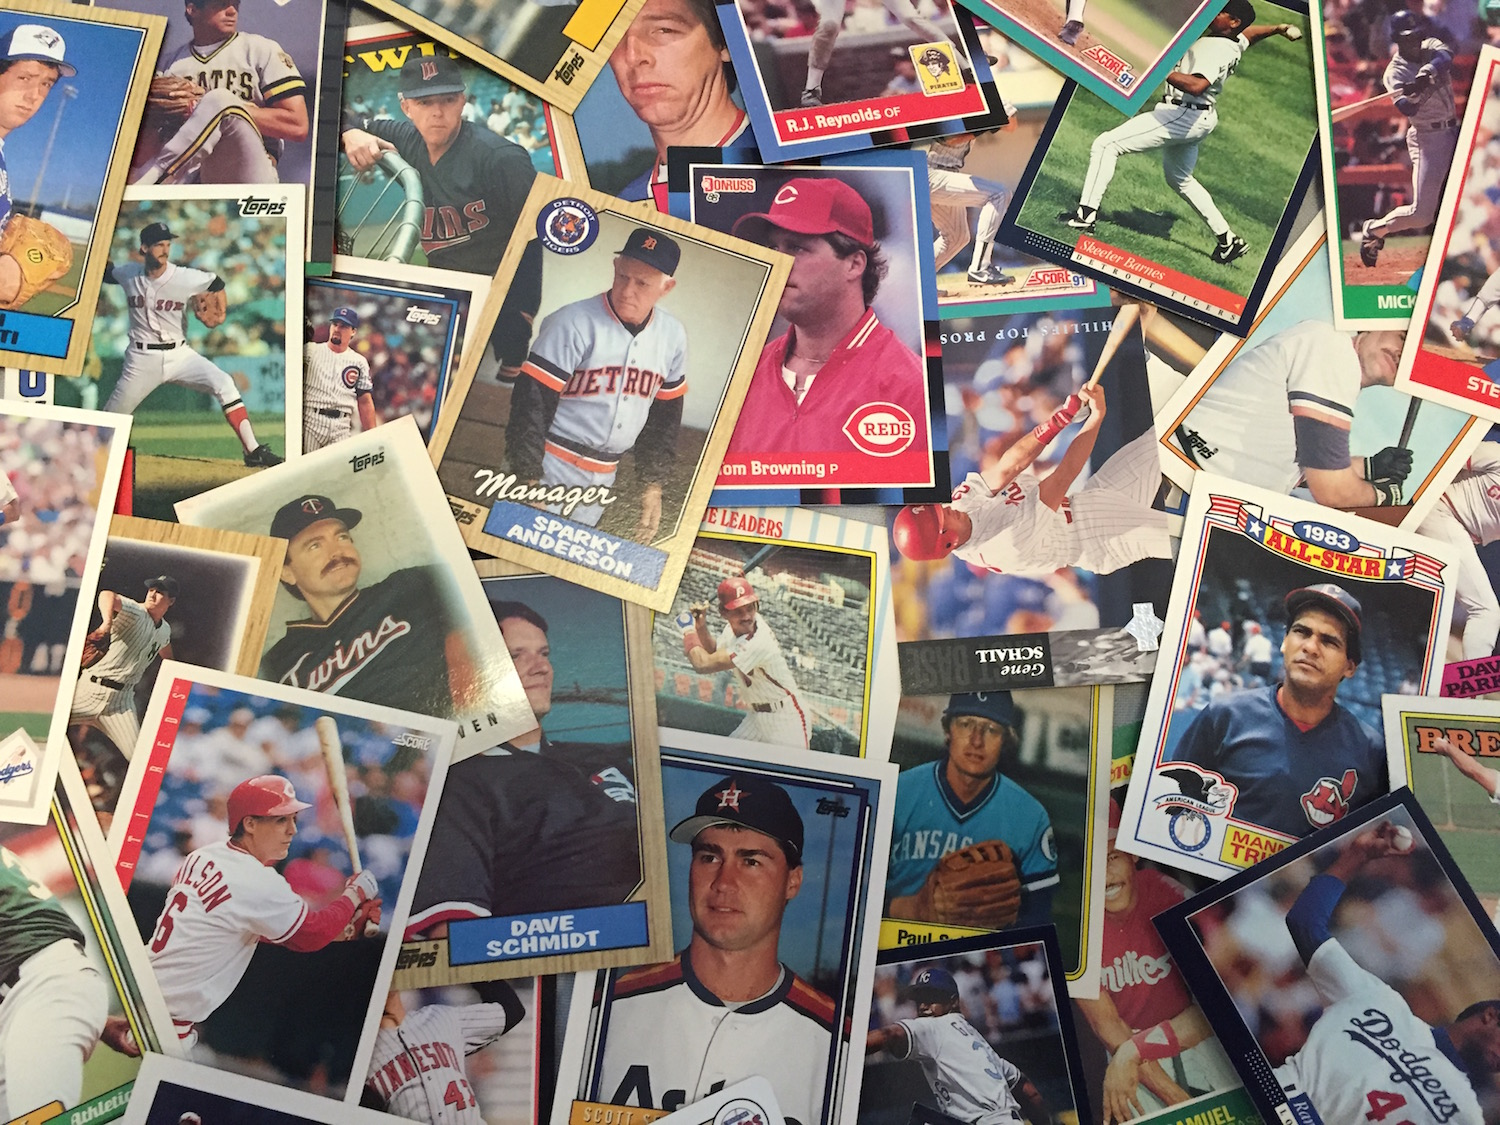 Daylight Savings, Baseball Cards and the Kindness of Strangers